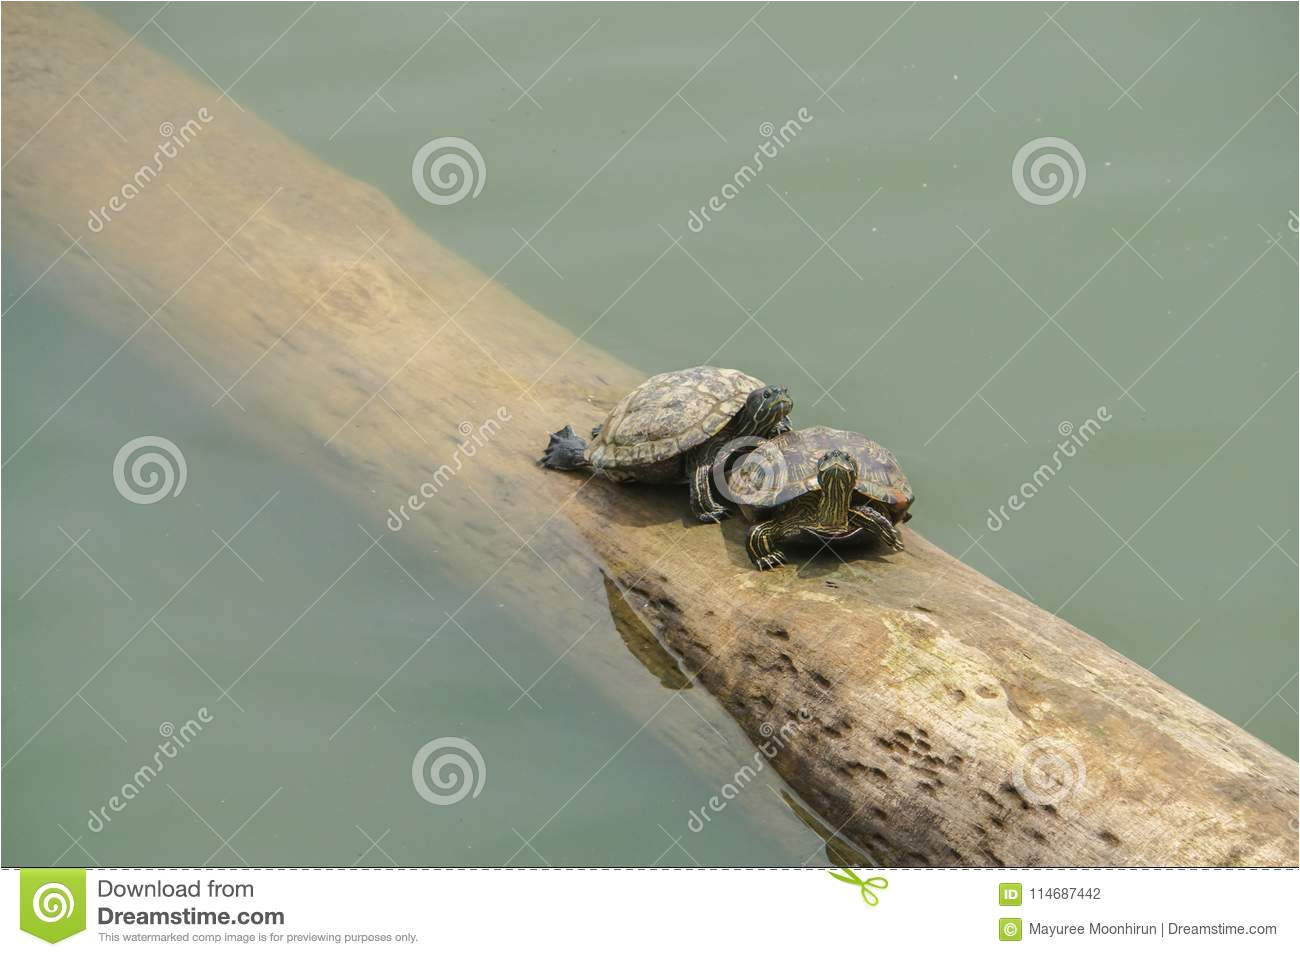 turtles on floating log in the river